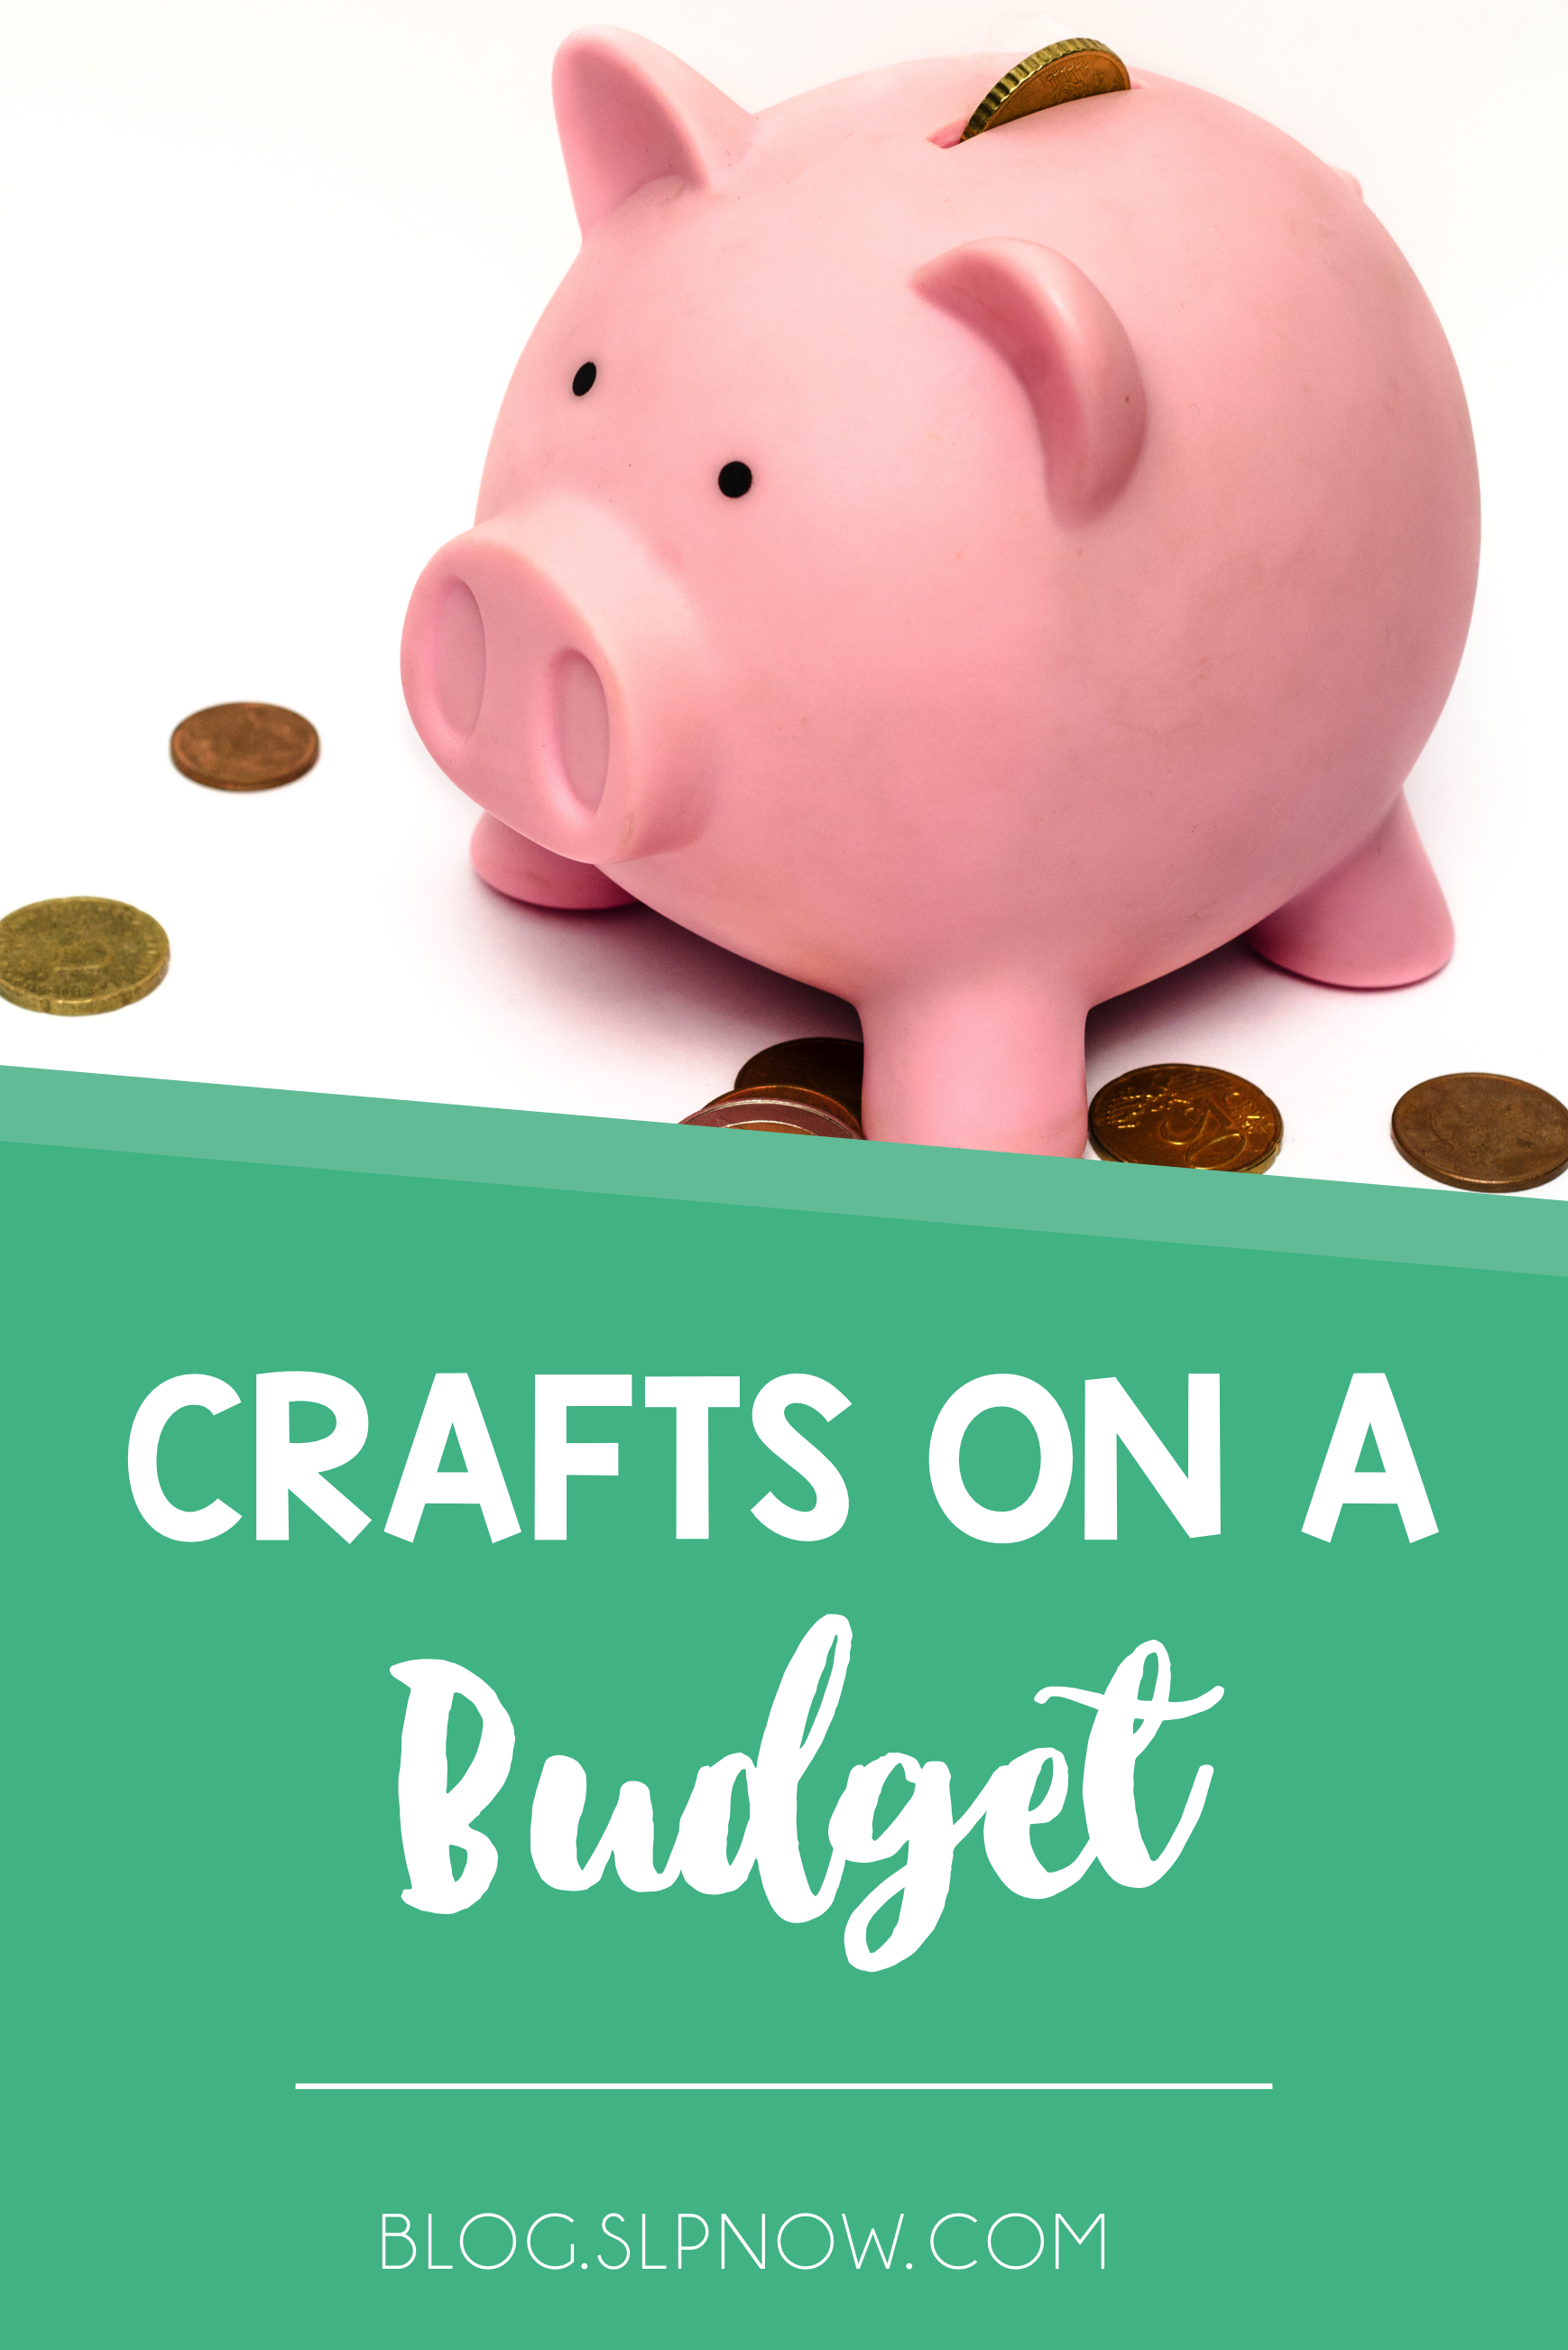 Are you an SLP who uses crafts for speech therapy? If not, then I hope you'll start using them after you read this post about craft materials on a budget! Crafting doesn't have to be expensive or time-consuming, and I'm here to show you how!